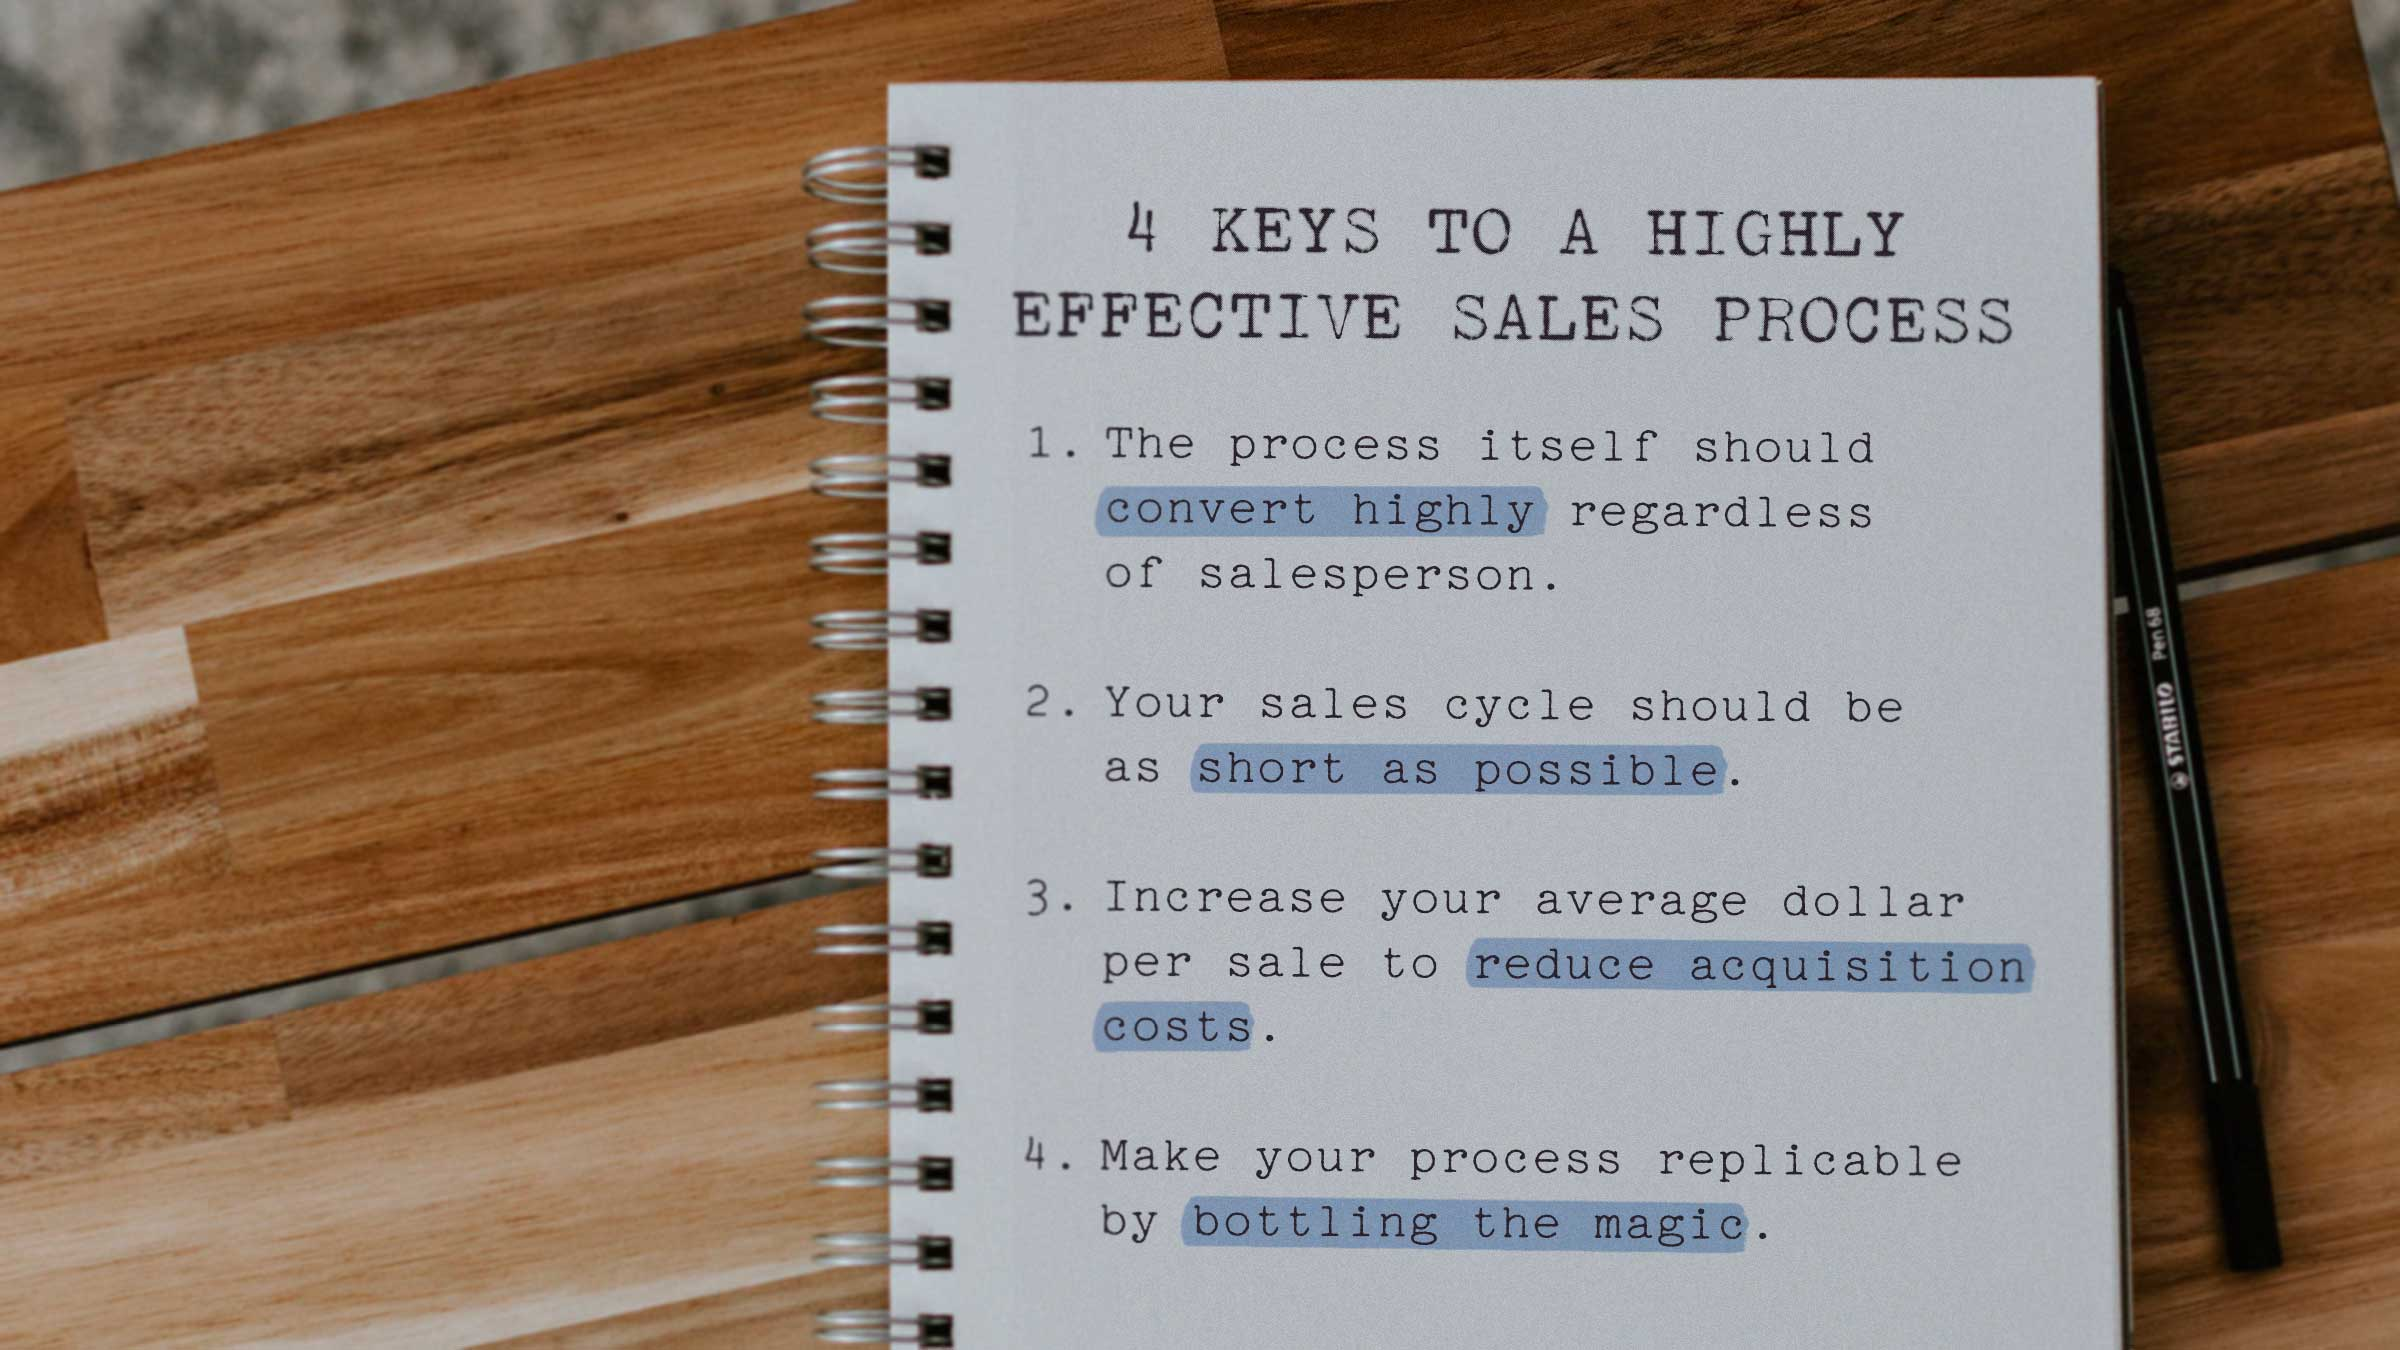 BLOG_4-keys-to-a-highly-effective-sales-process